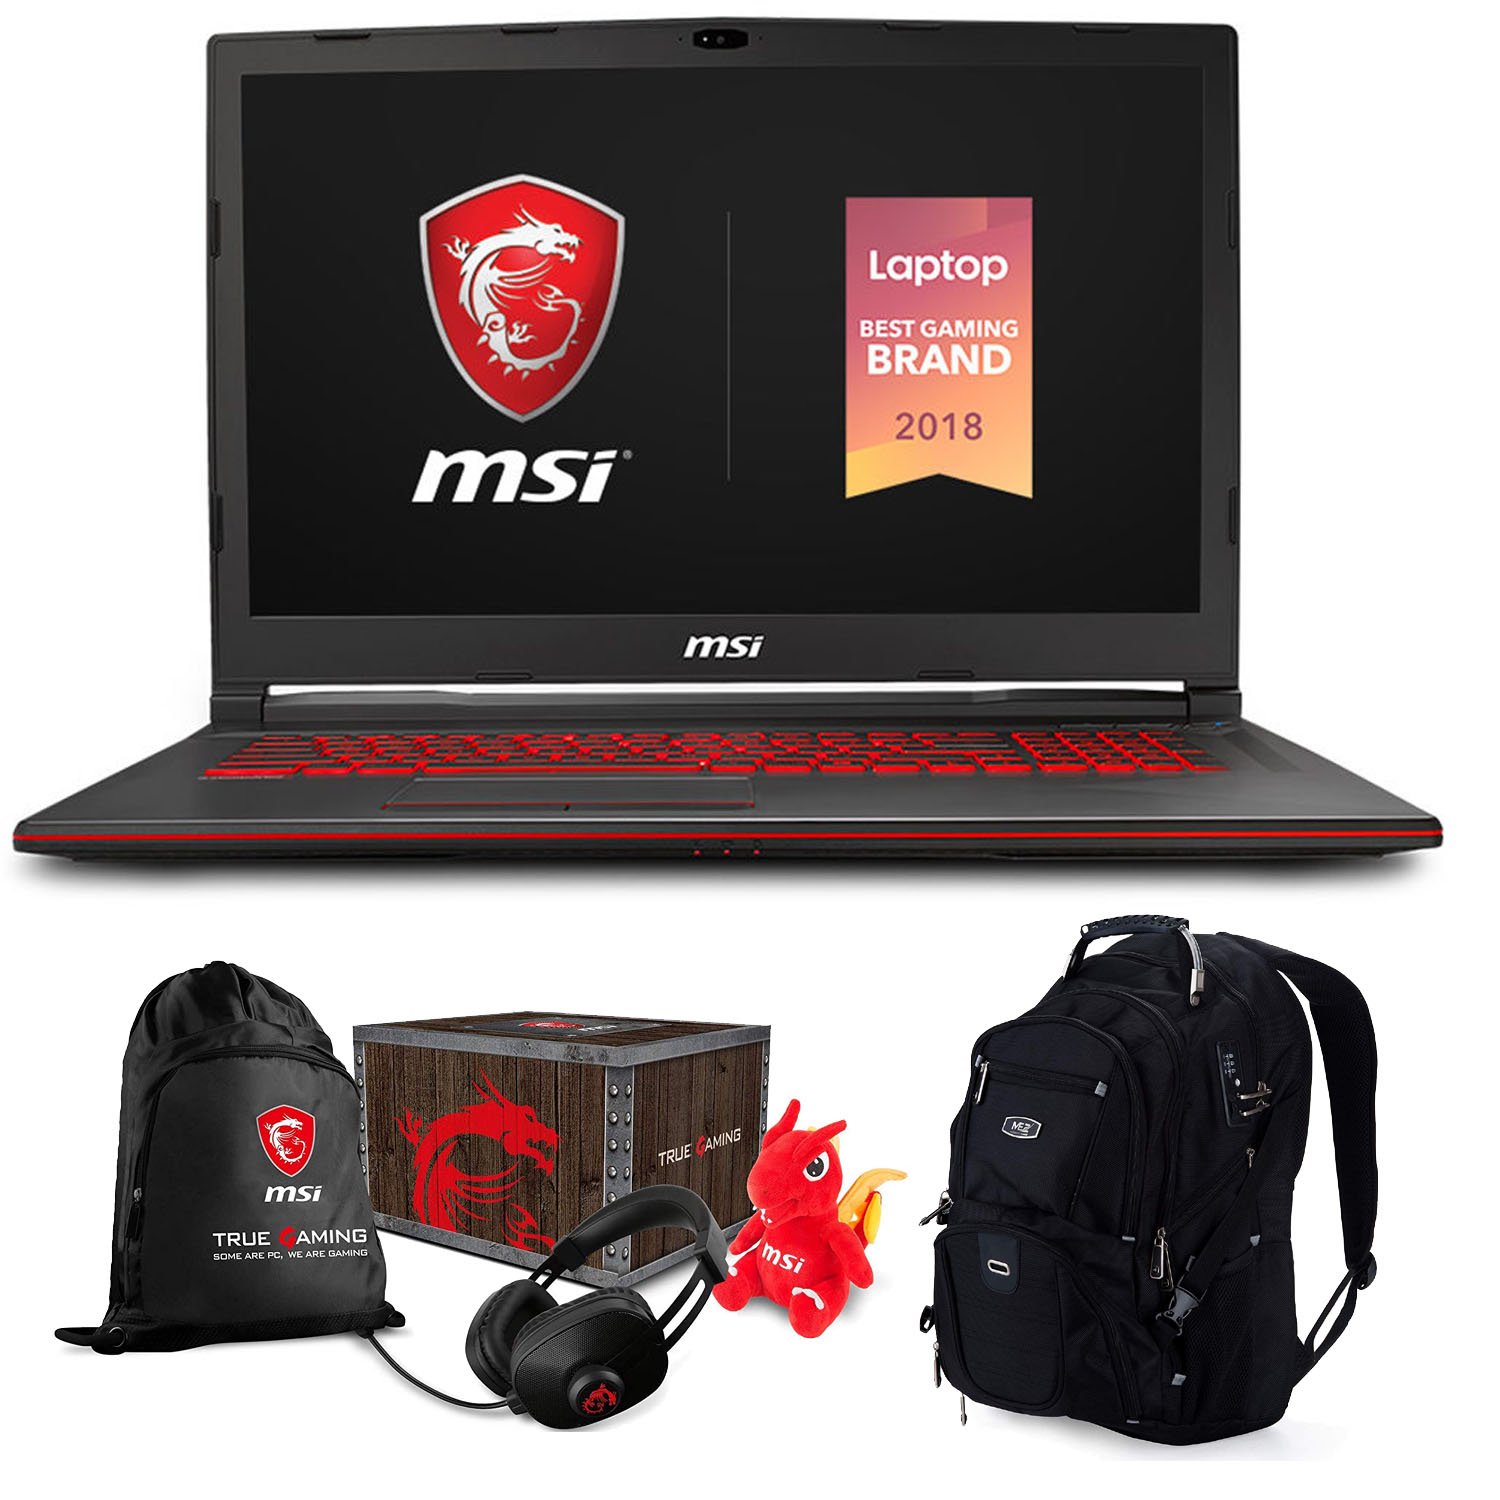 "MSI GL73 8SE-010 17.3"" Gaming Laptop (Intel 8th Gen i7-8750H 6-Core, 16GB RAM, 1TB HDD + 128GB PCIe SSD, 17.3"" Full HD 120Hz 3ms, NVIDIA RTX 2060 6GB, Win 10 Home) With MSI Loot Box and ME2 Backpack"